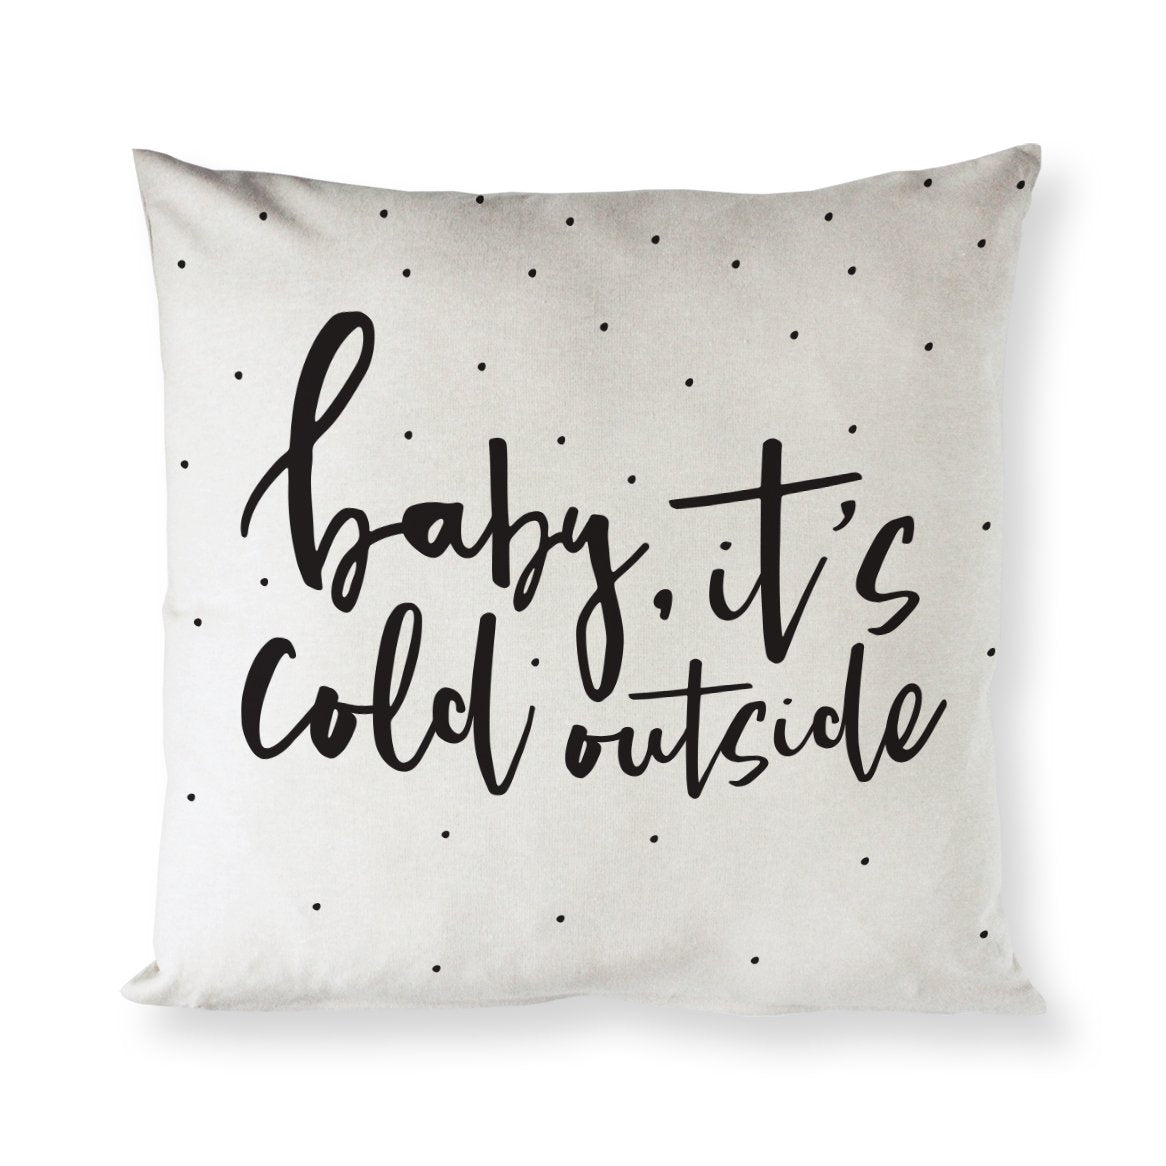 Baby It's Cold Outside Cotton Canvas Christmas Holiday Pillow Cover